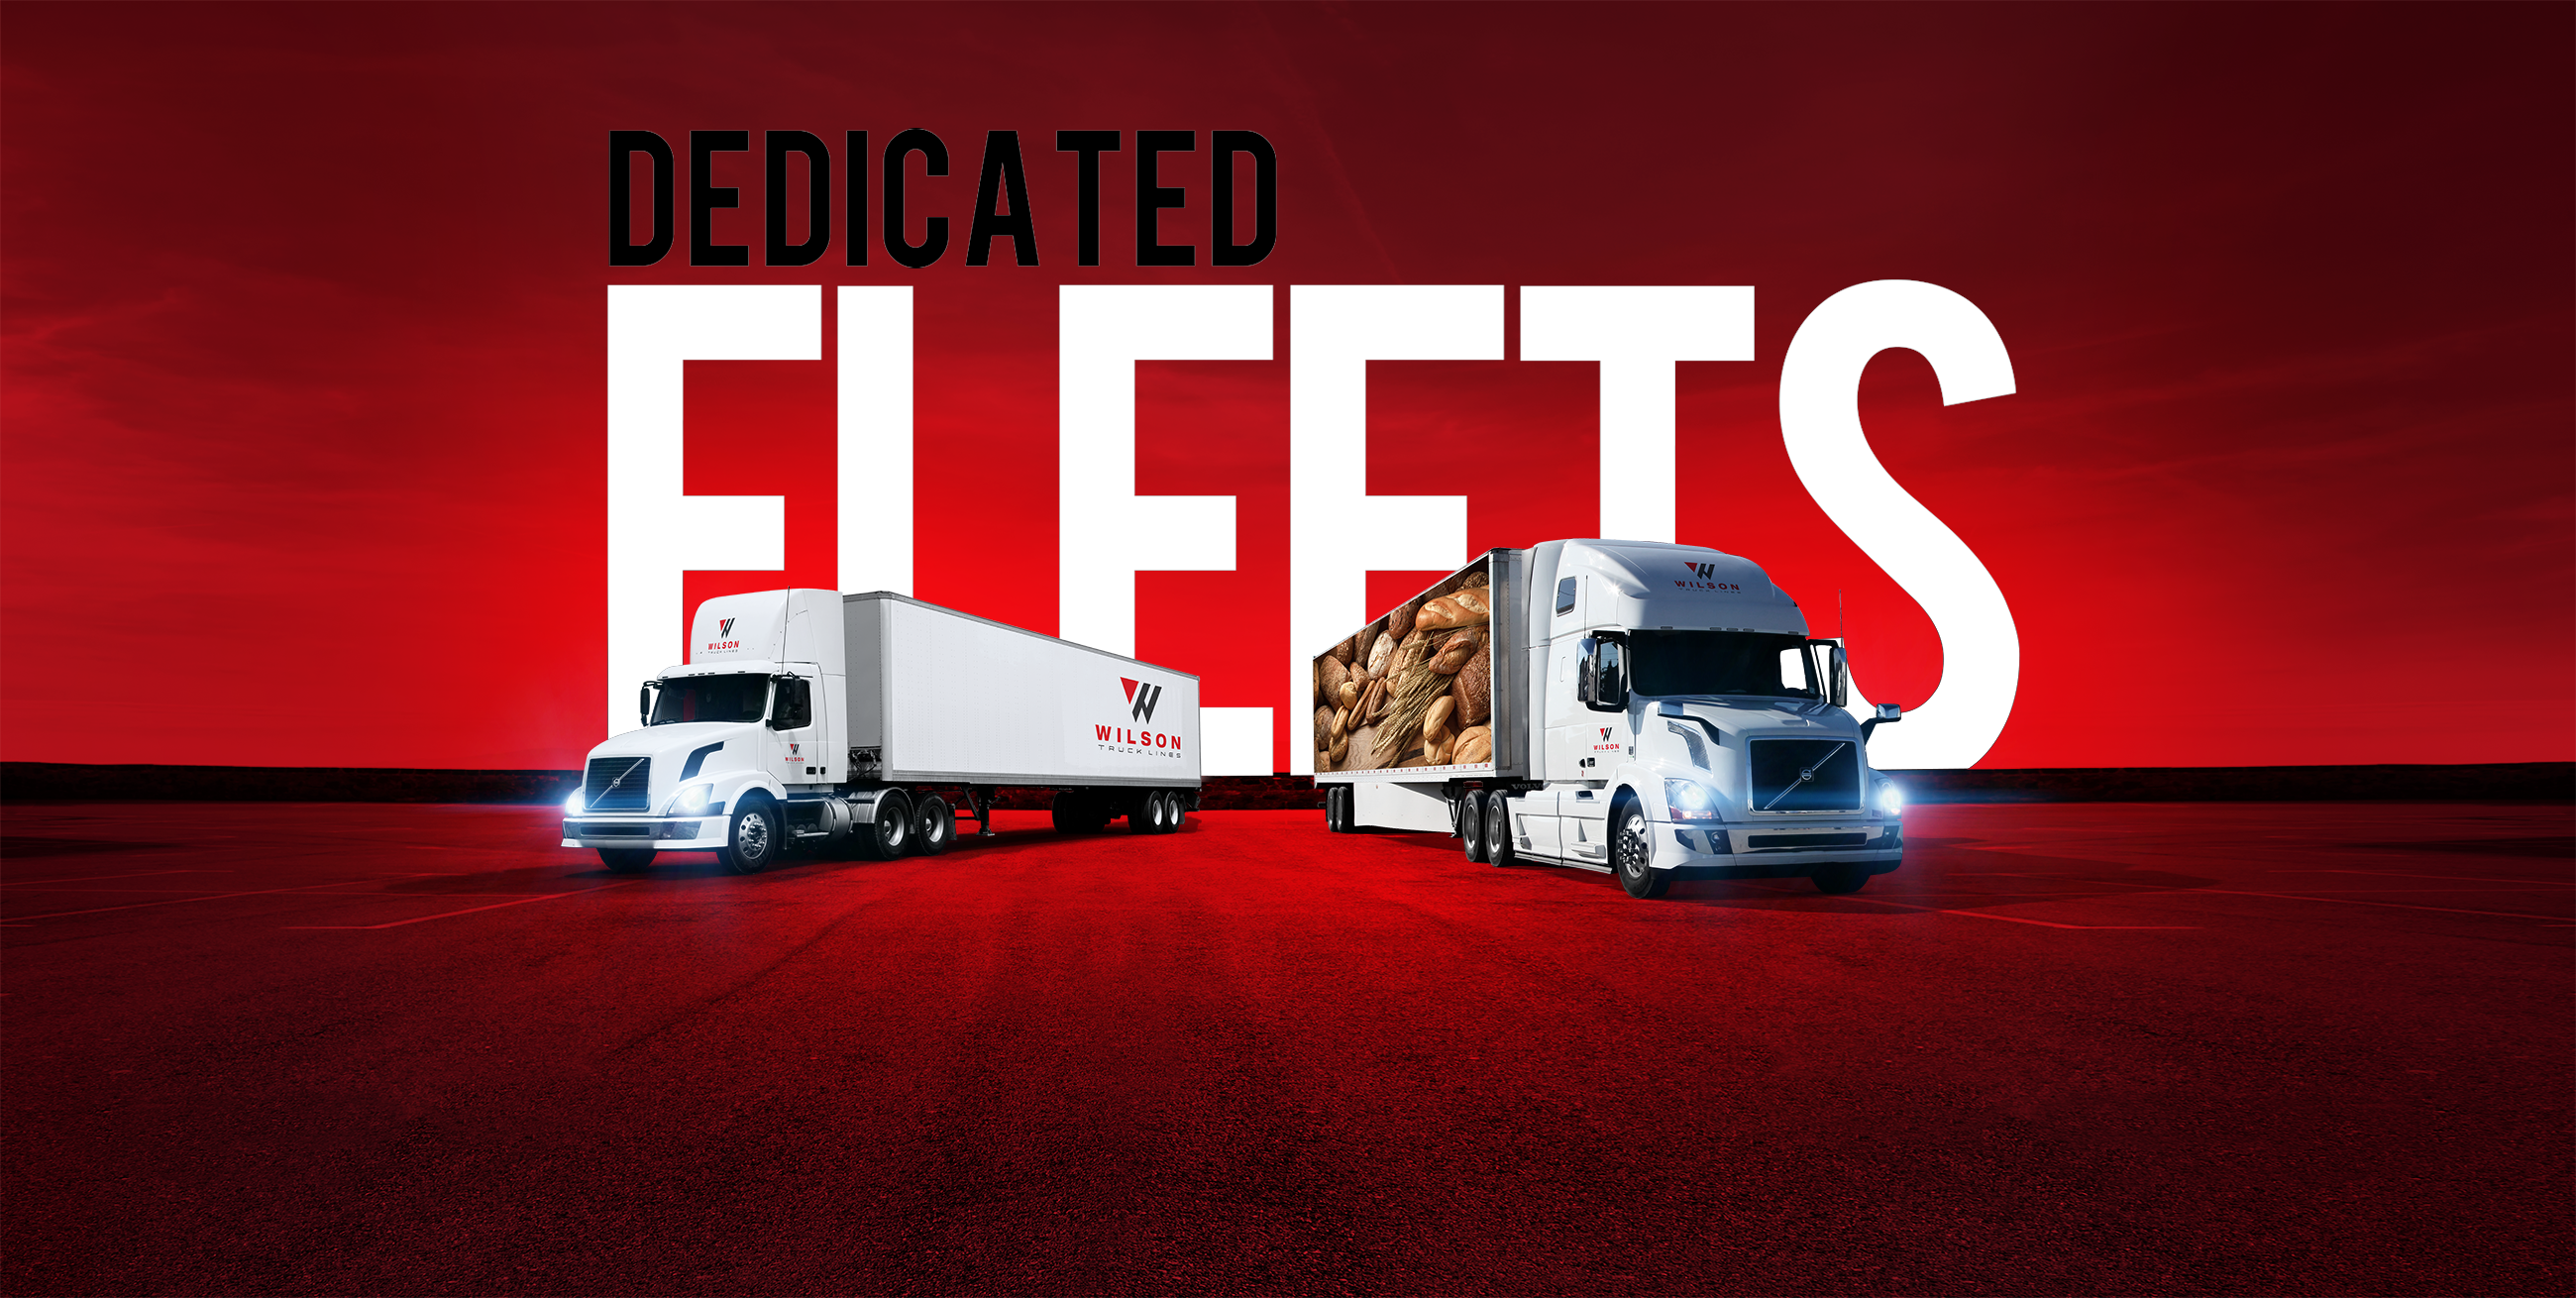 Dedicated fleets